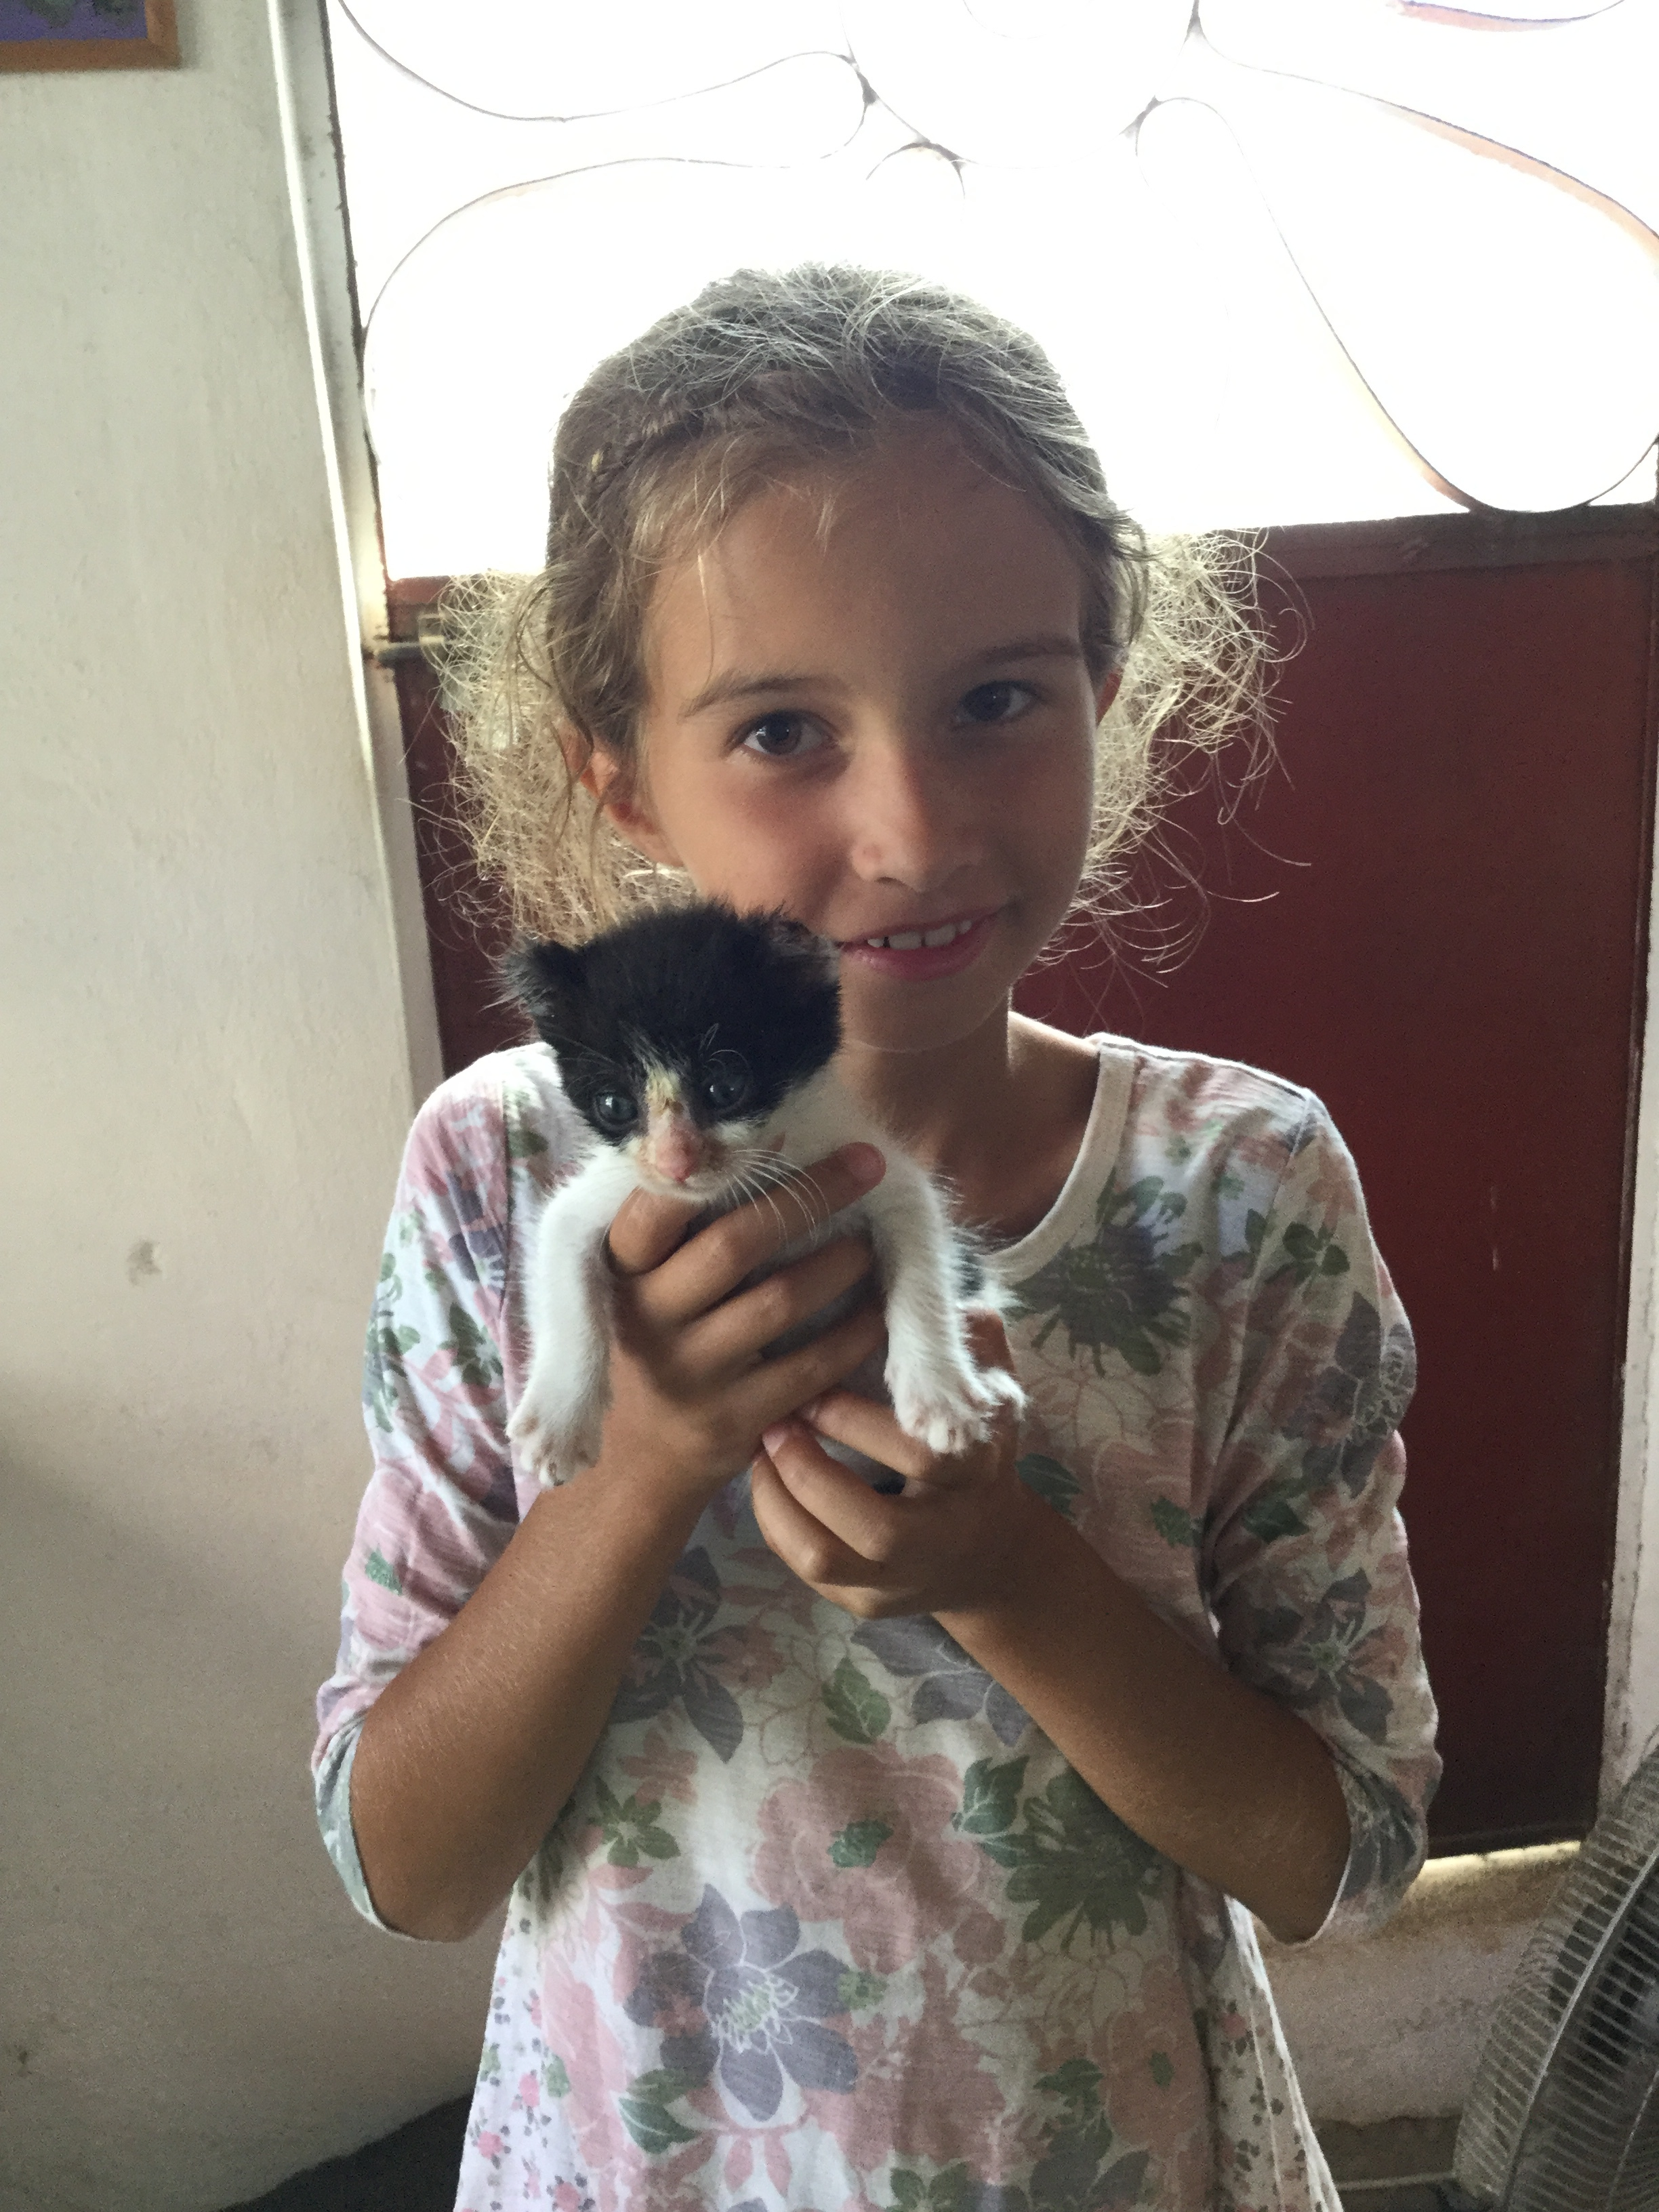 This little cat, E.T. is healing at Sayulitanimals after it was found injured in town. Lili loves cuddling him.